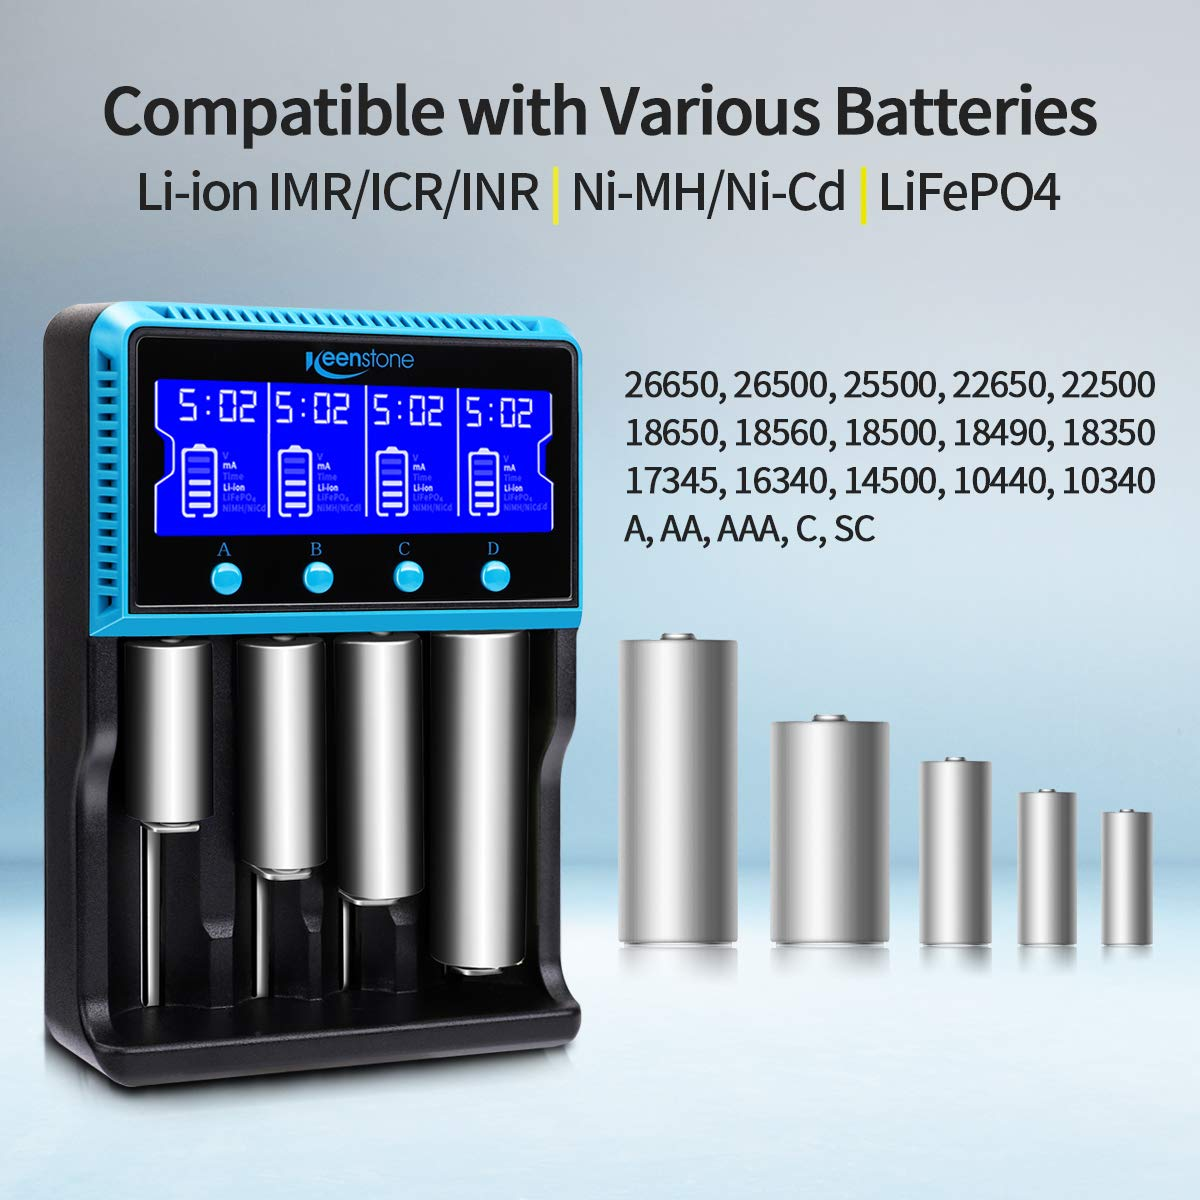 Keenstone Universal Battery Charger 4 Bay, 18650 Fast Charger UK with LCD Display & Car Charger for Li-ion Lifepo4 Ni-MH Ni-Cd AA AAA 14500 16340 18560 25500 26650 Flat Top Rechargeable Batteries